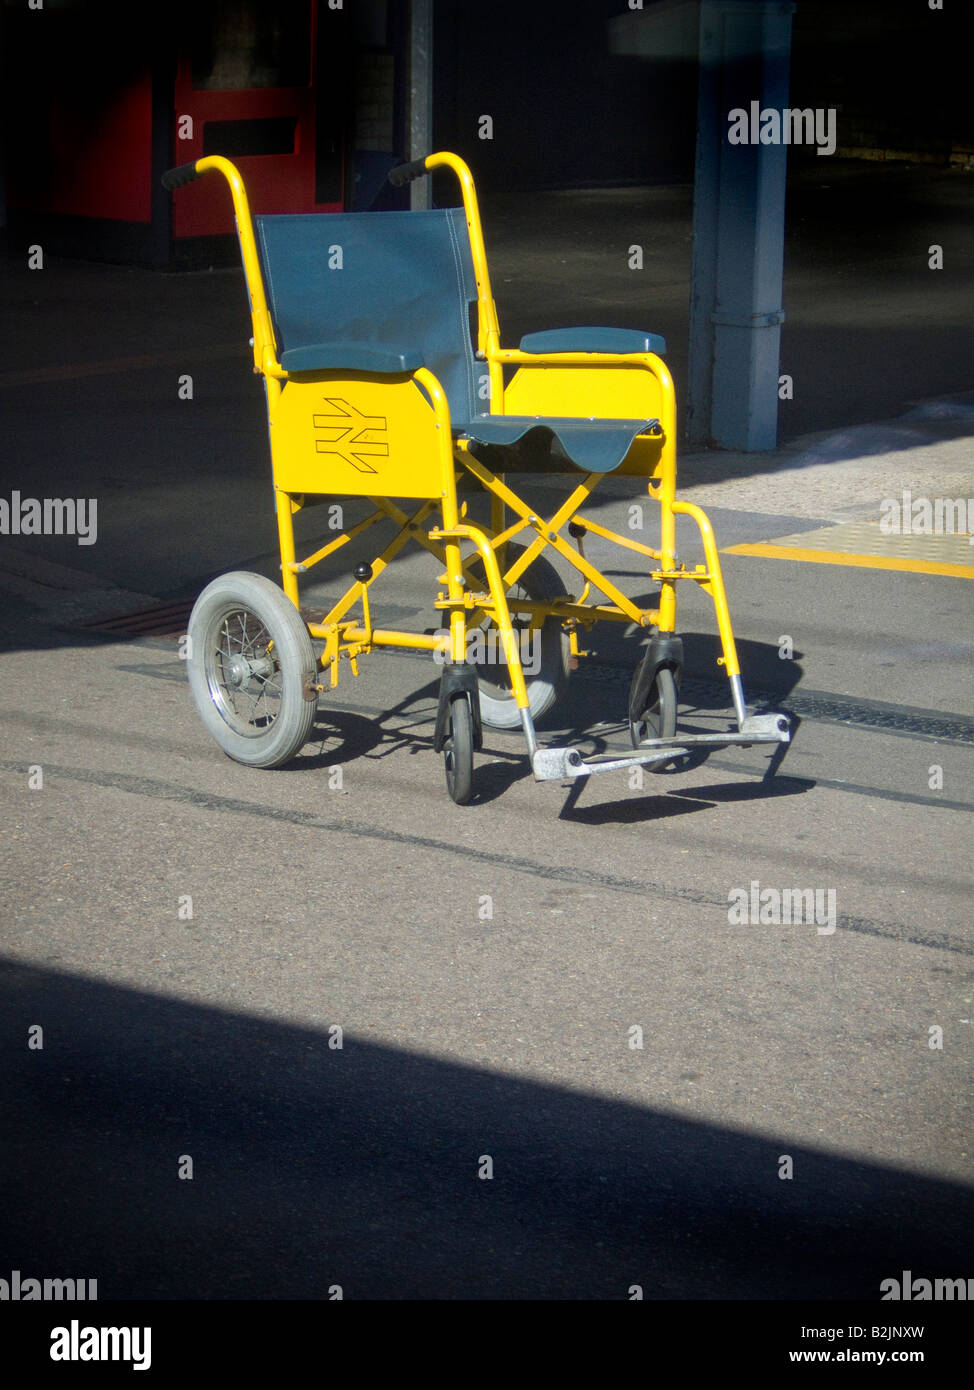 yellow wheelchair cream crushed velvet chair covers stock photos images alamy a sitting in isolation awaiting ride disability concept image